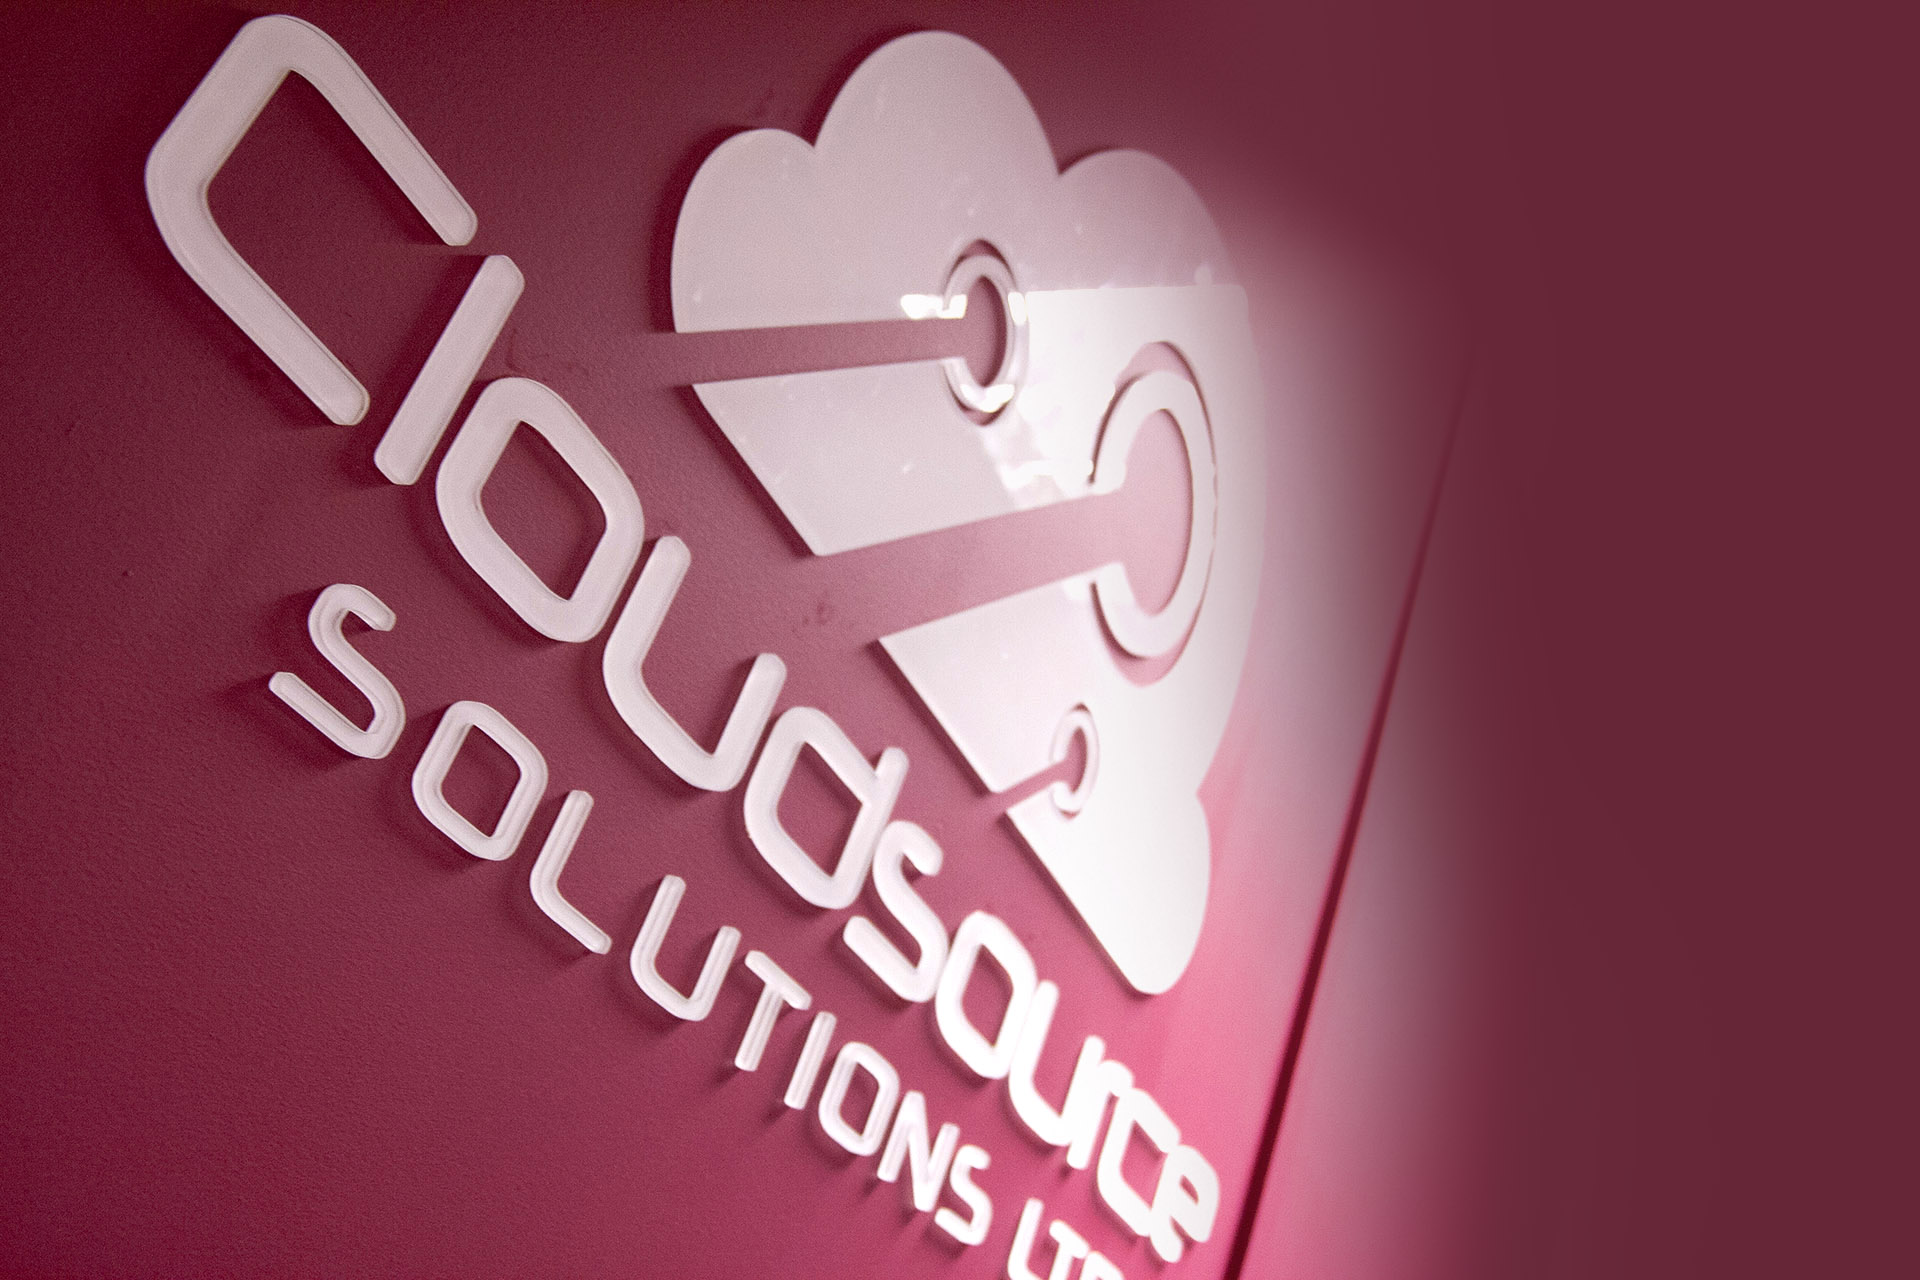 Cloudsource wall sign